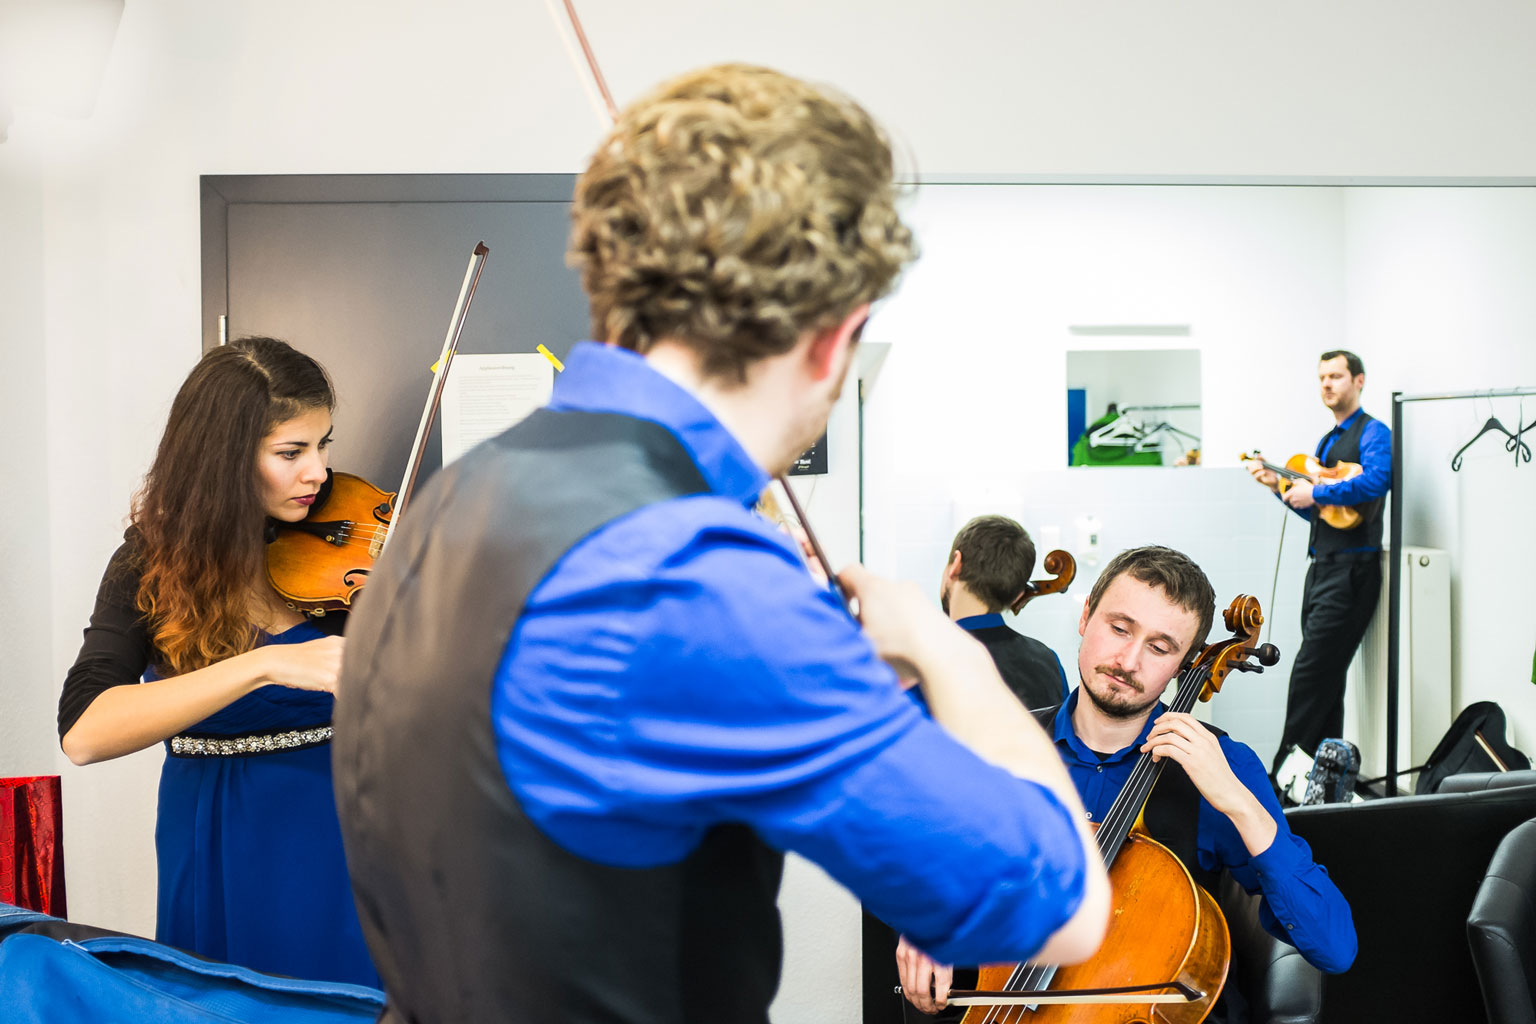 Feuerbach Quartett - Backstage Probe